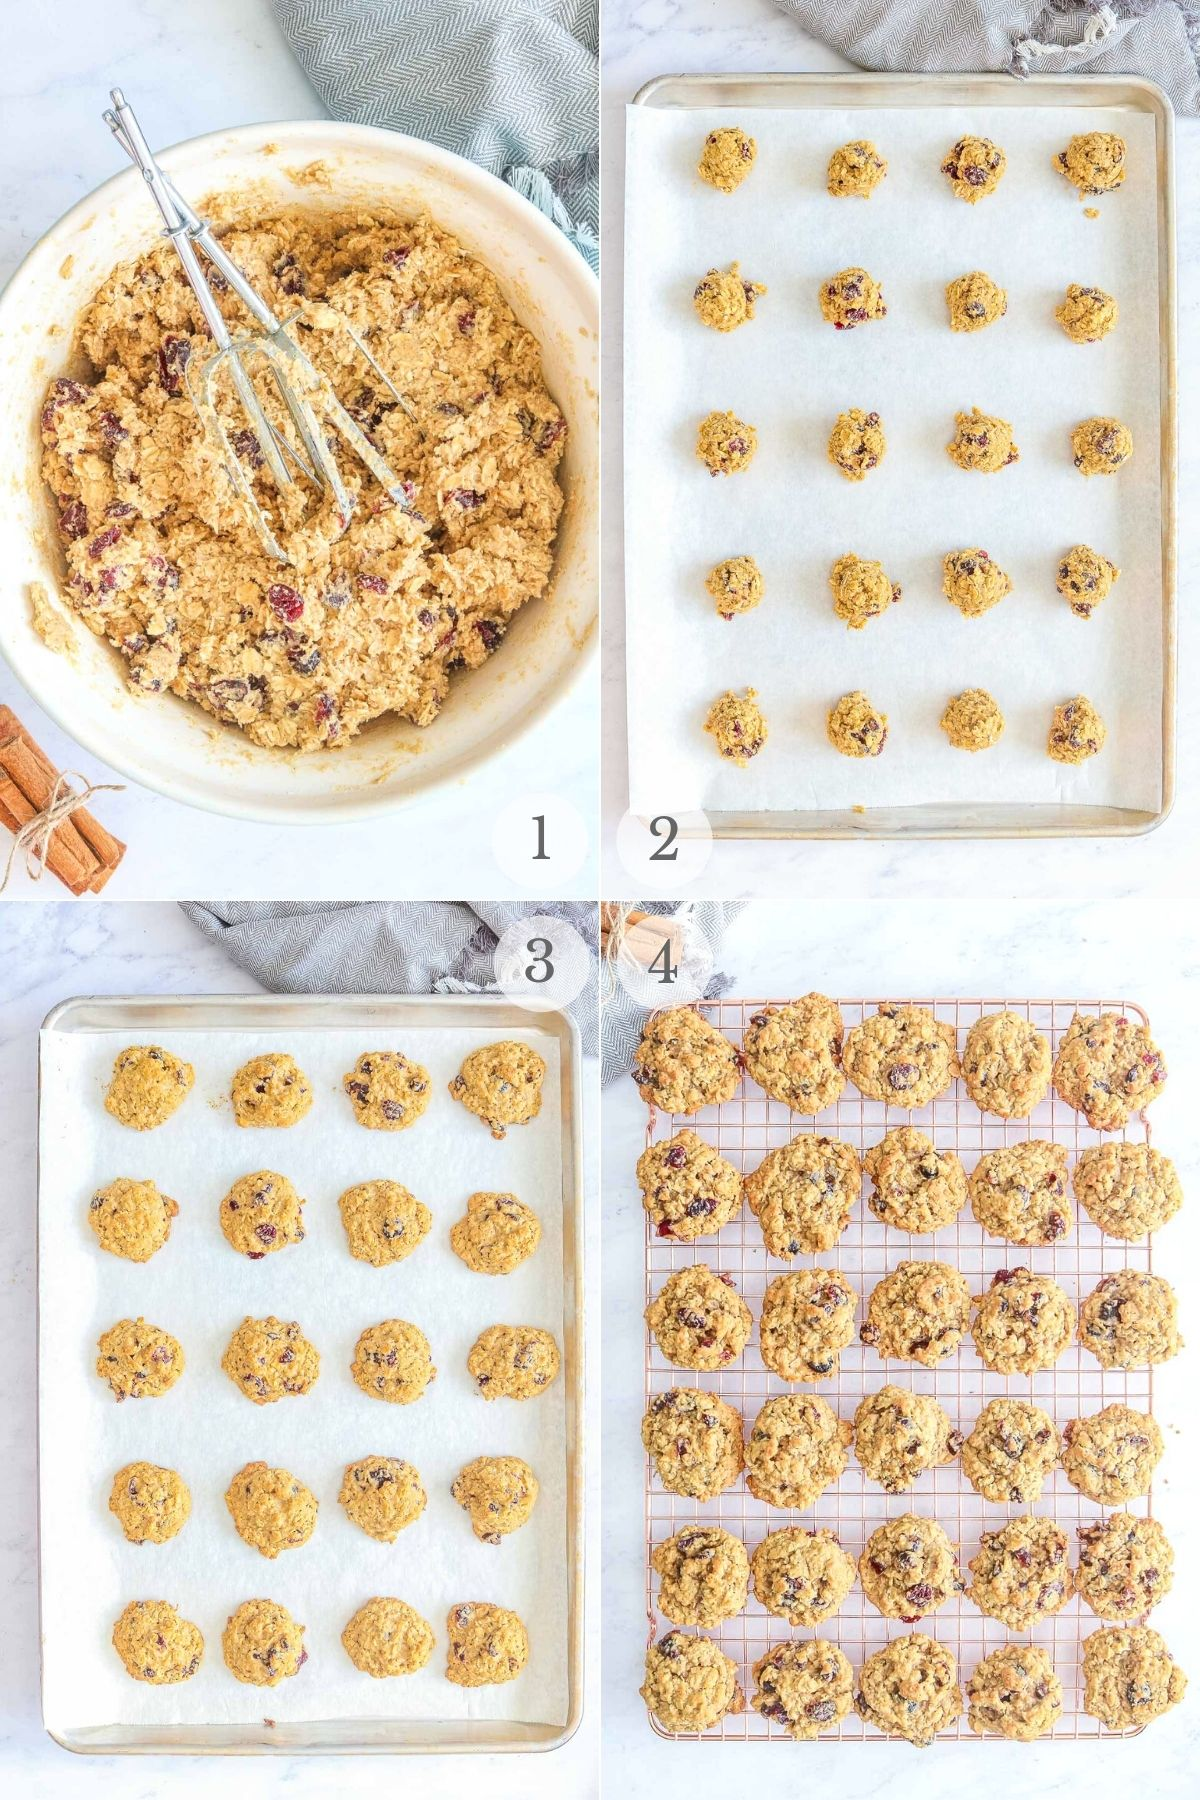 cranberry oatmeal cookies recipe steps 1-4